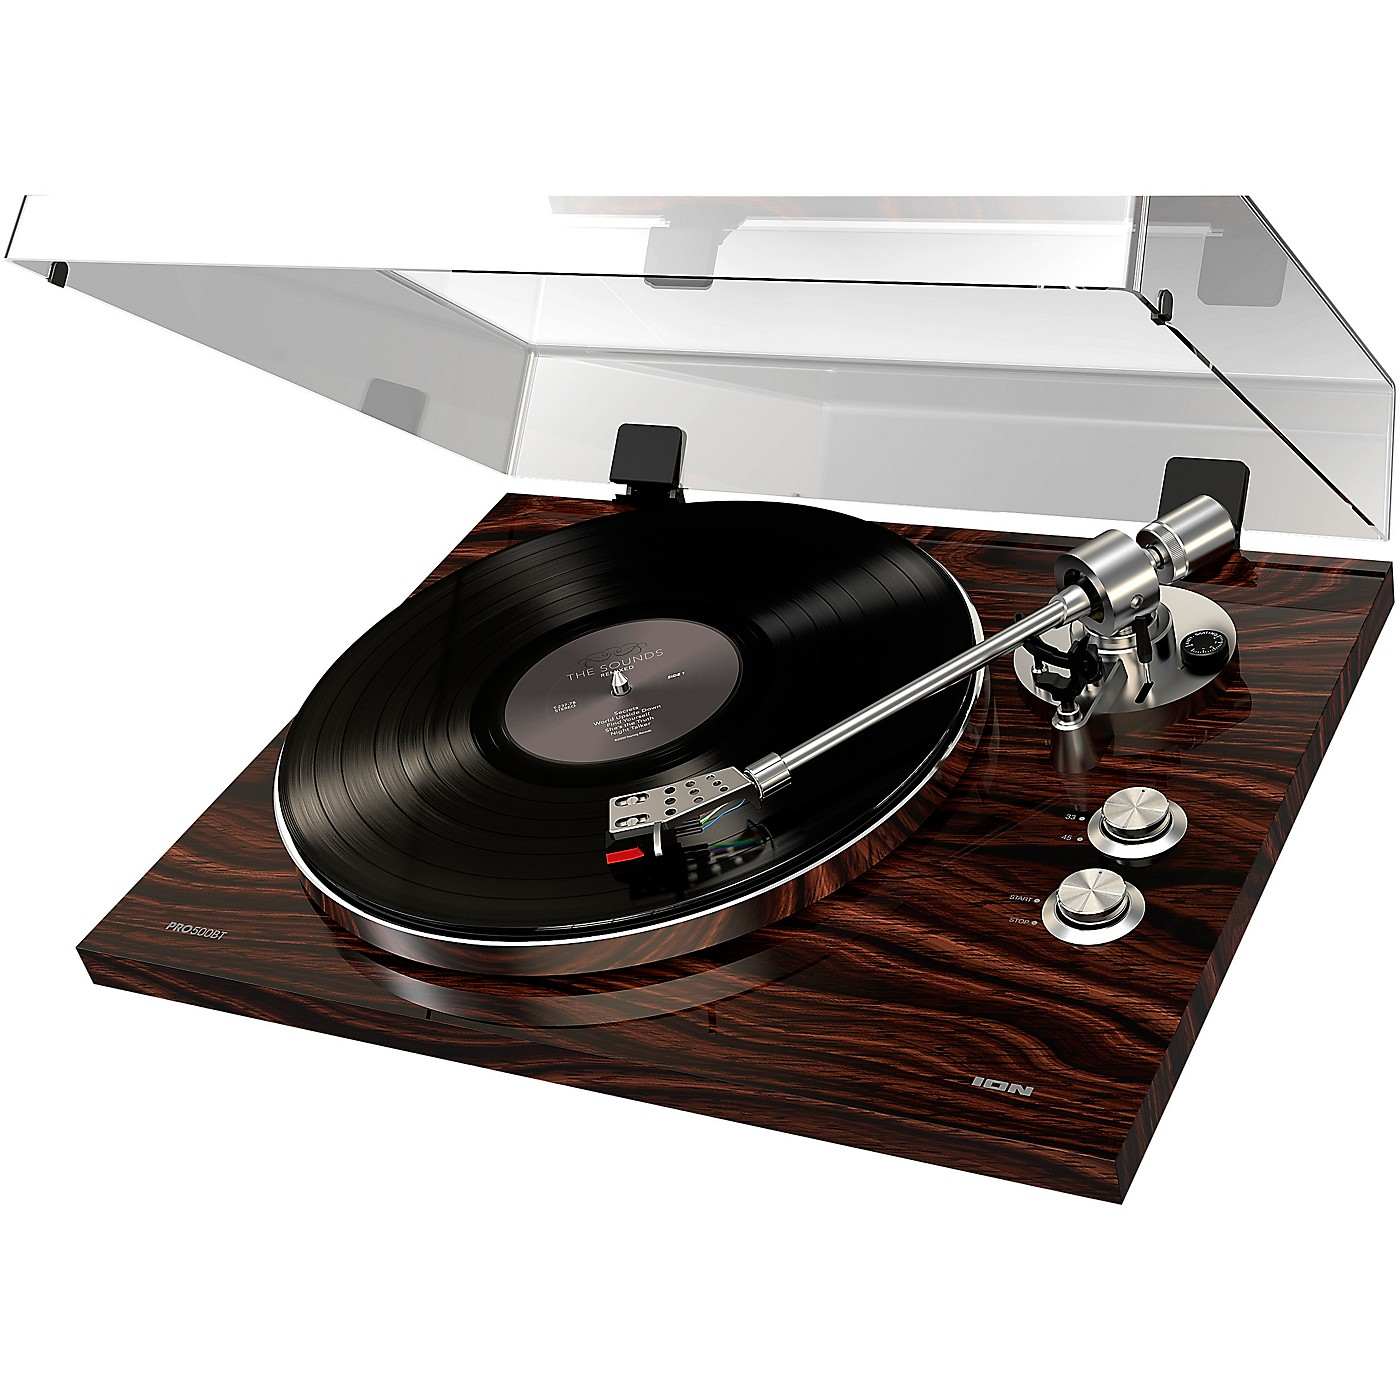 ION Pro BT500 Record Player thumbnail